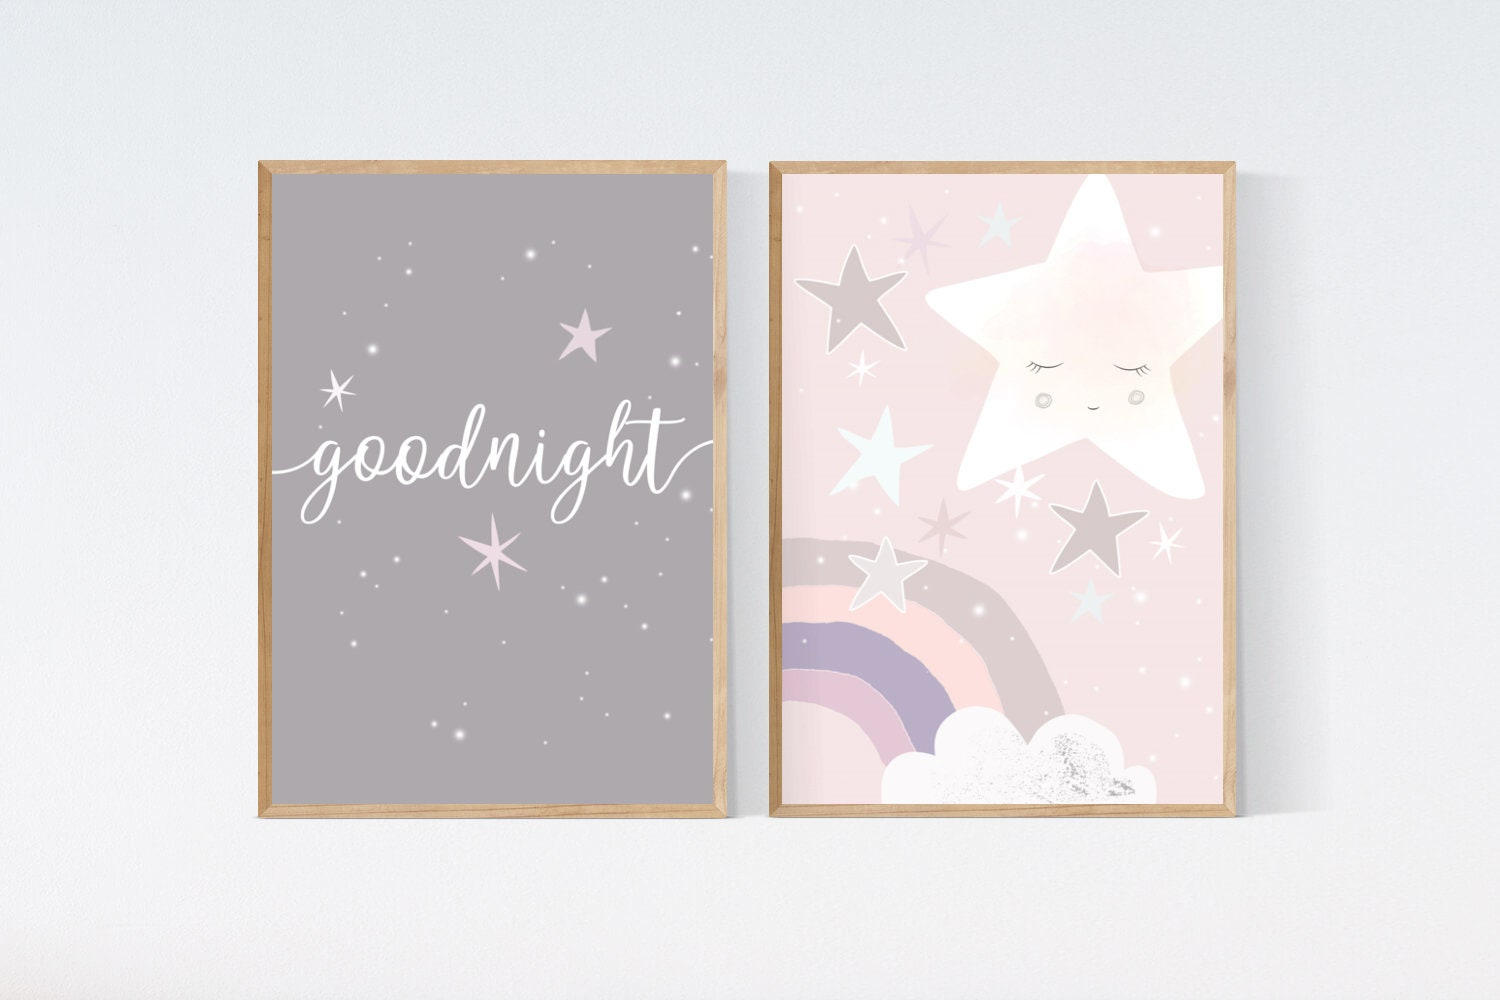 3 Cute Prints Kawaii Moon Cloud Goodnight Nursery Wall Art Baby Decor Pictures